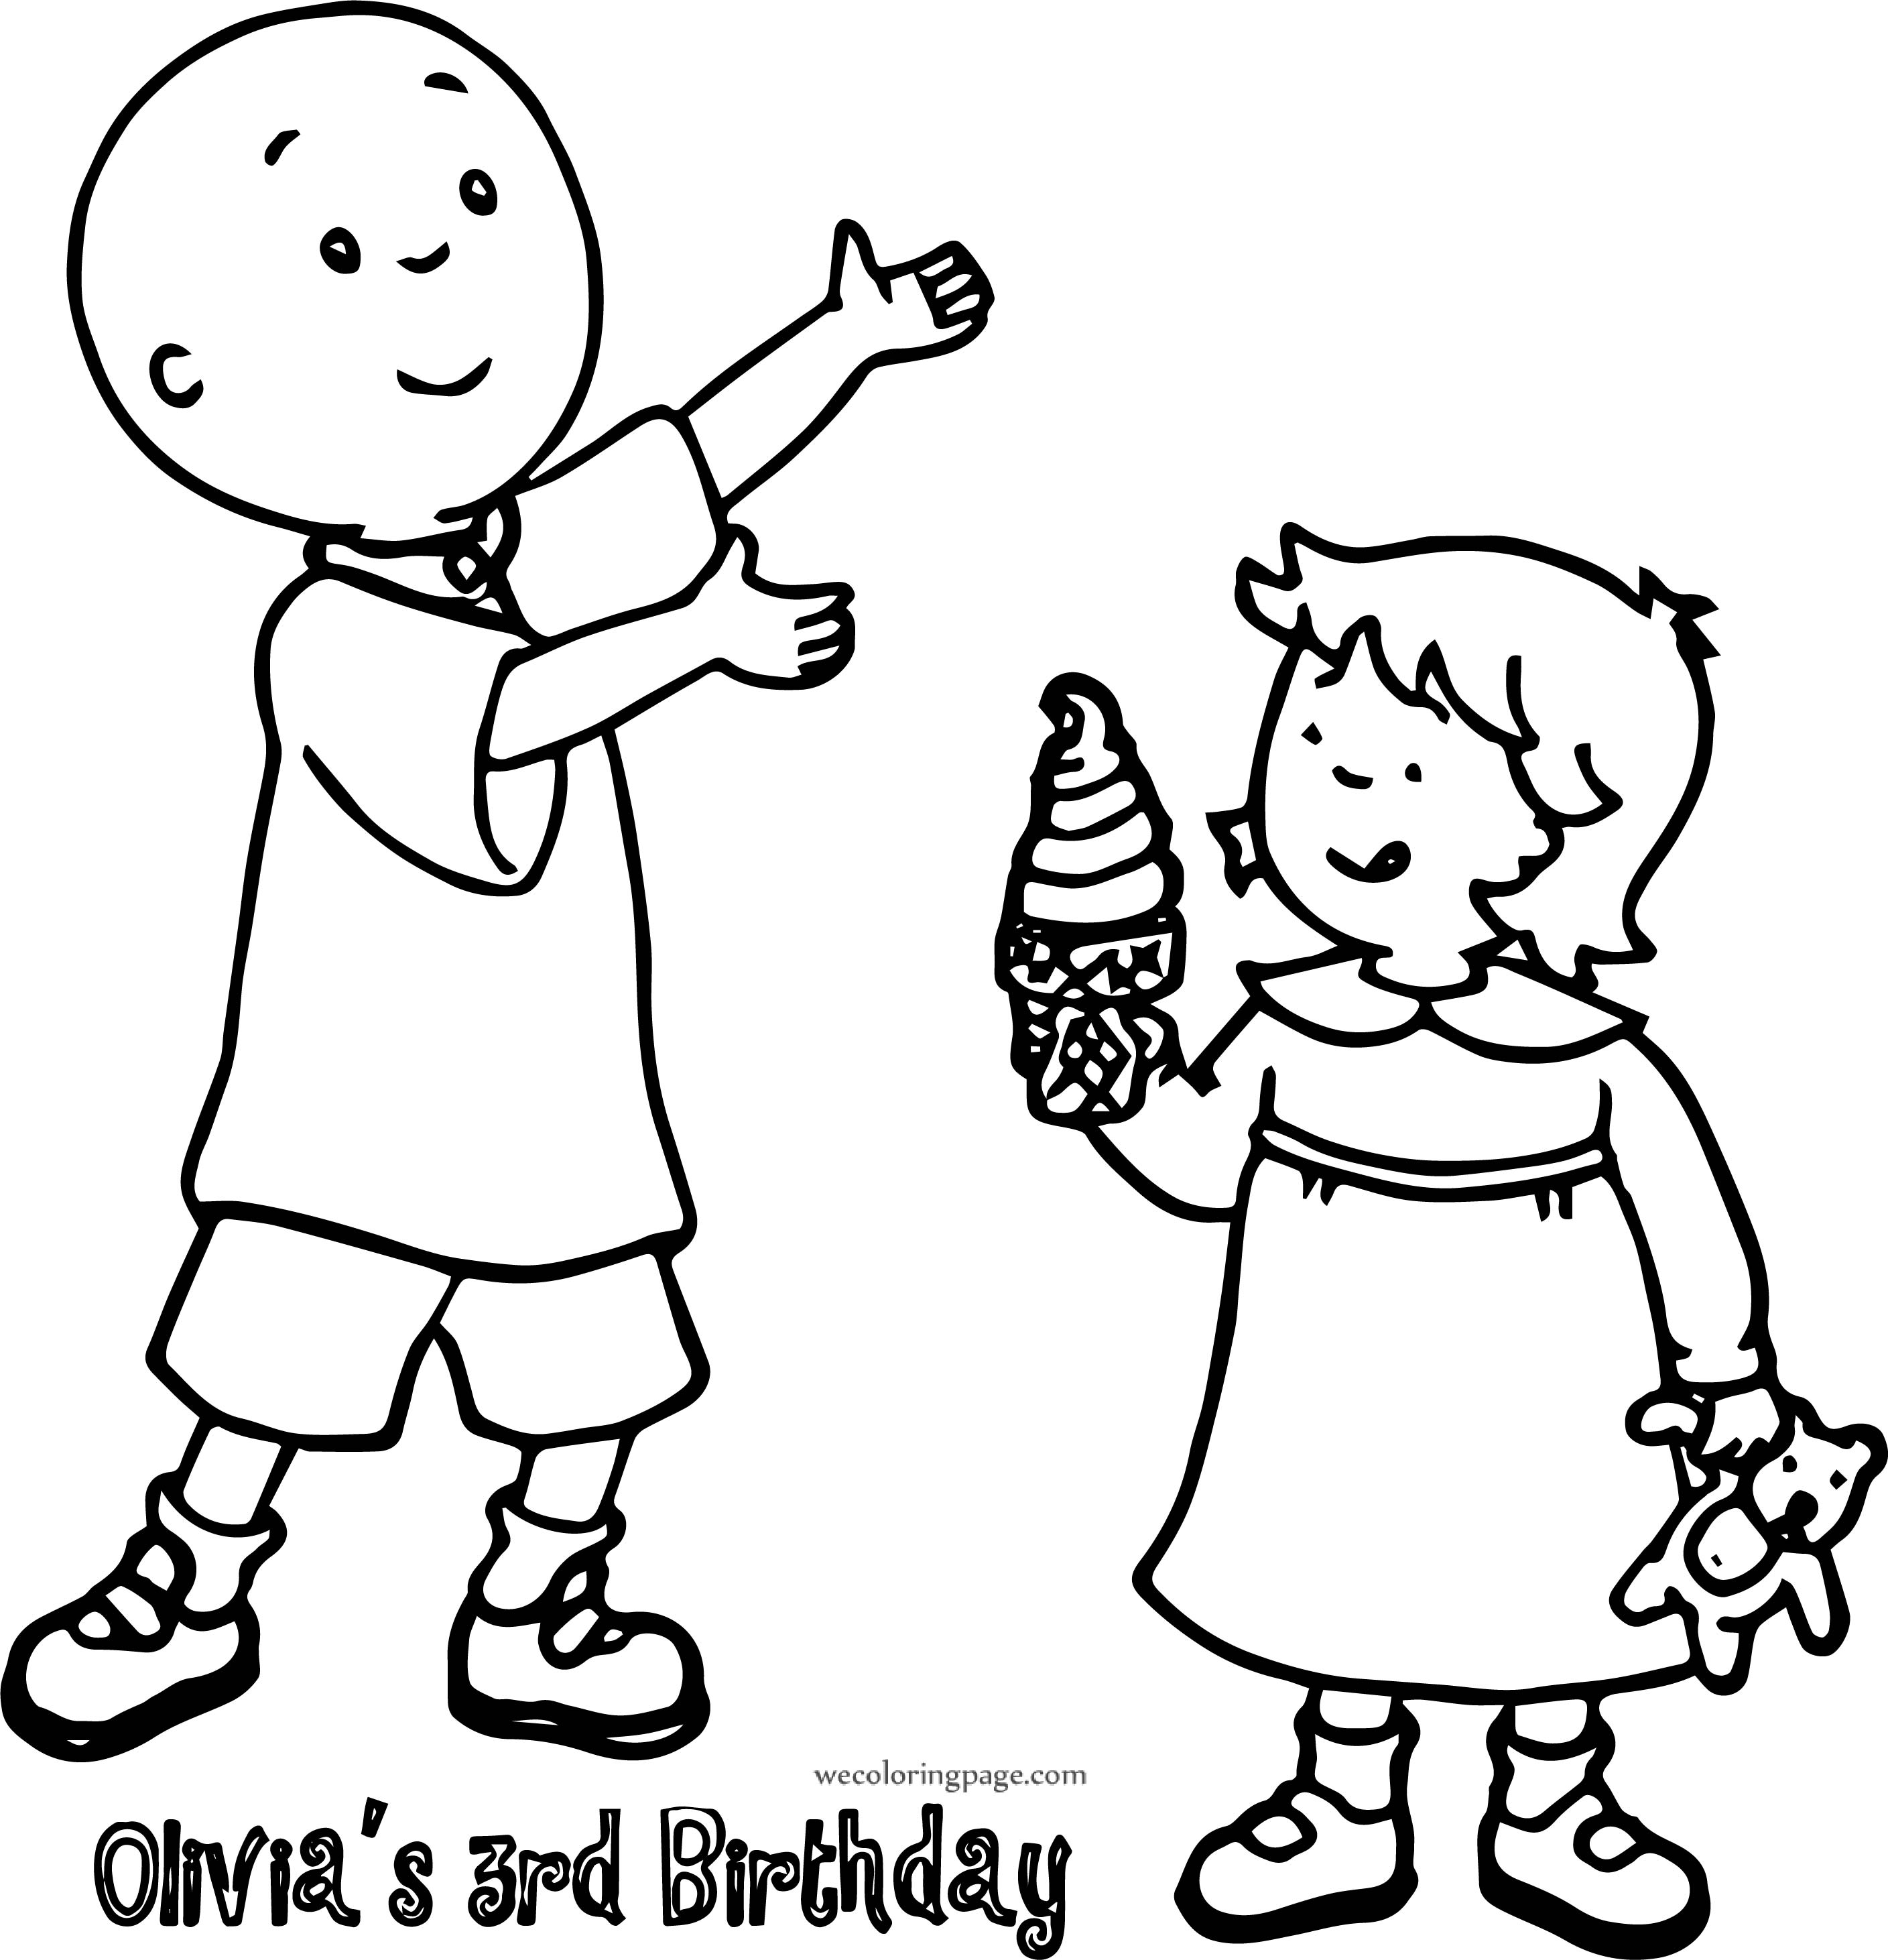 Caillou 3rd Birthday Coloring Page